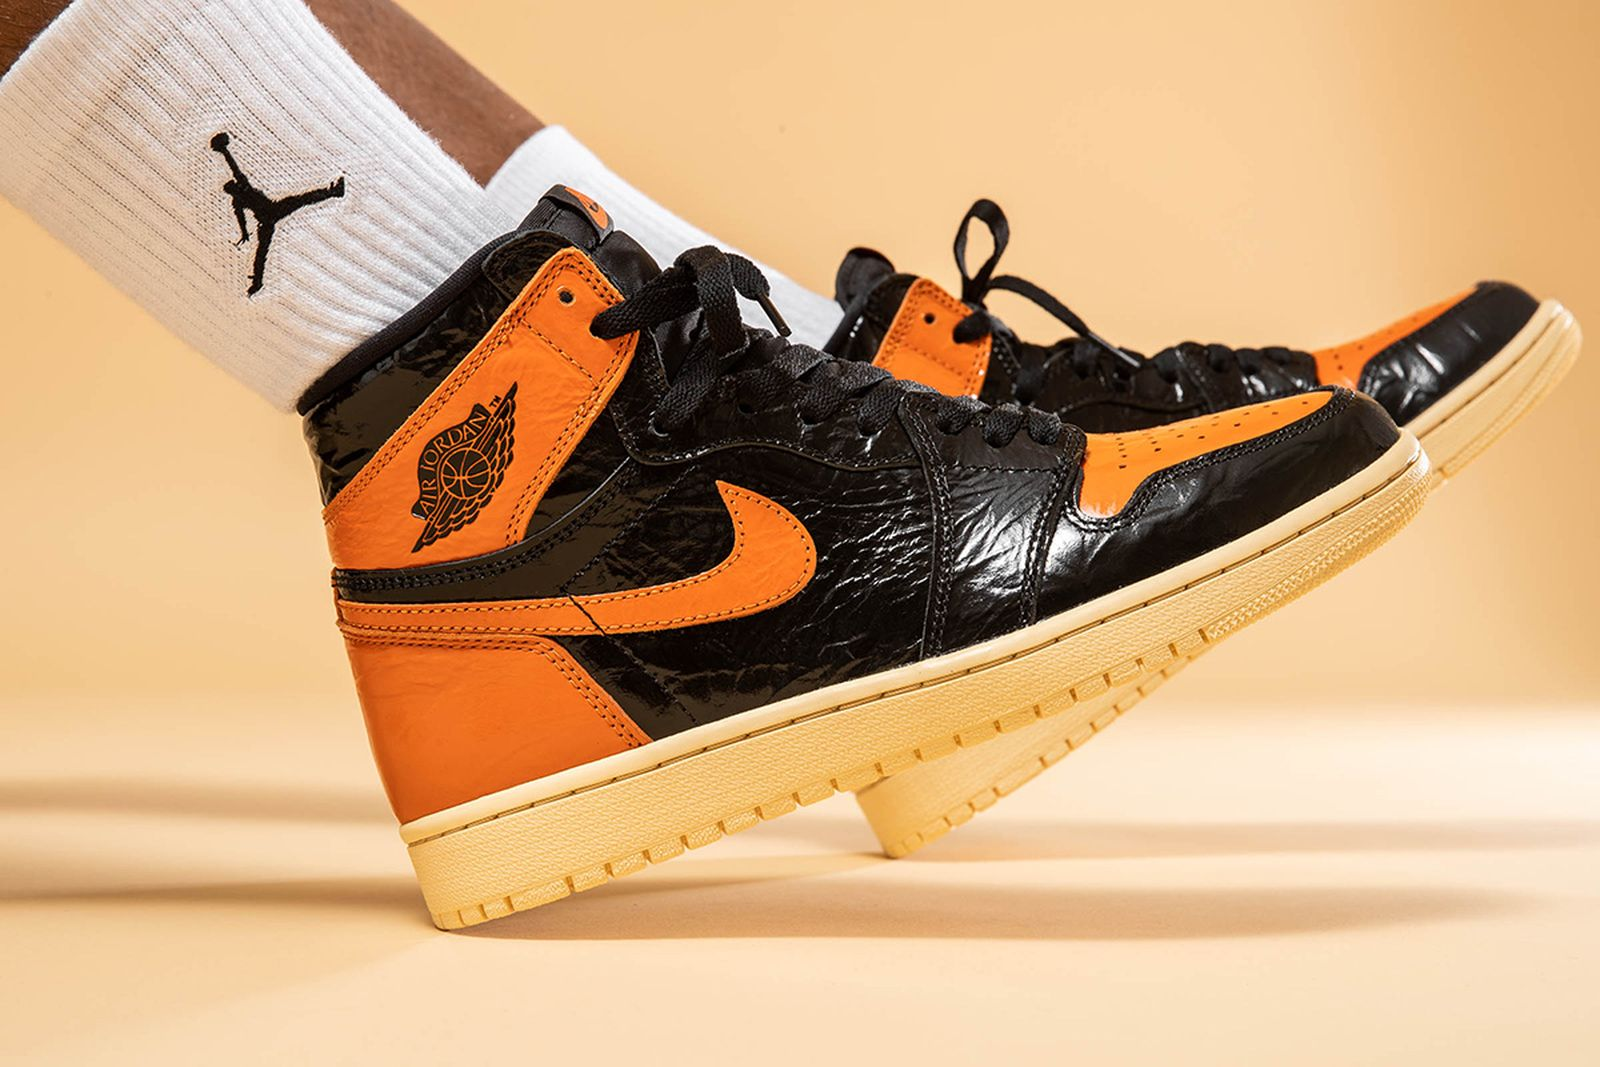 Disgusto contacto esquema  Nike Air Jordan 1 Shattered Backboard 3.0: Official Release Info